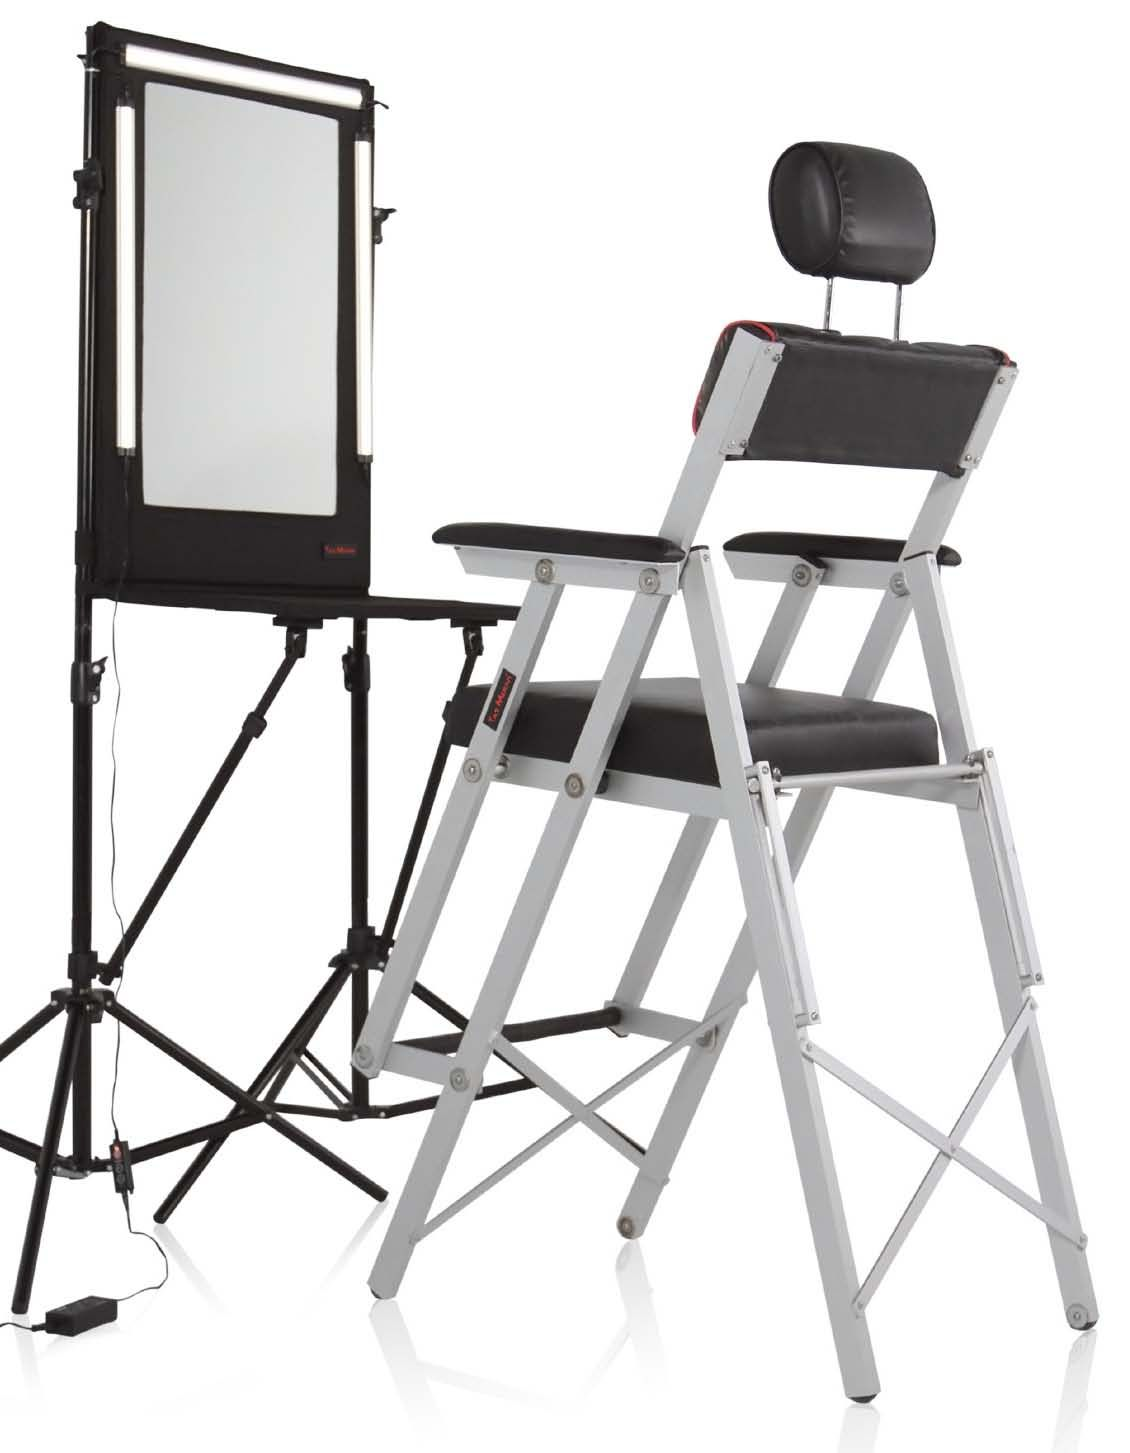 Make Up Studio Chairs Makeup Station And Chair Tm 11 3 Makeup Chair Pinterest